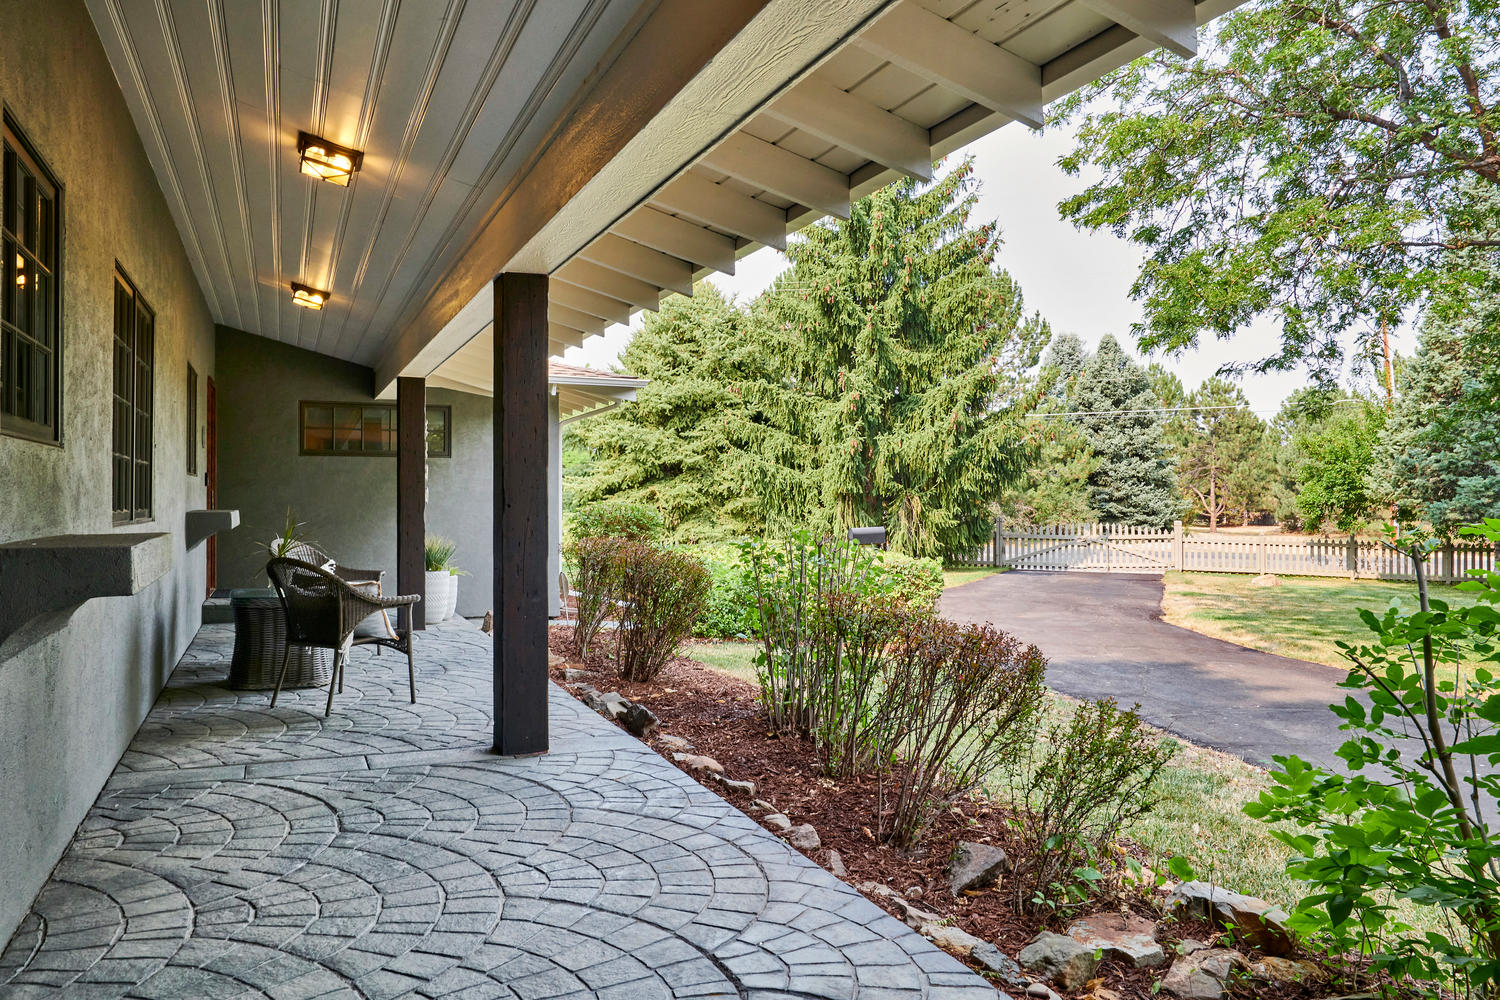 Spacious Covered Front Porch at Entry